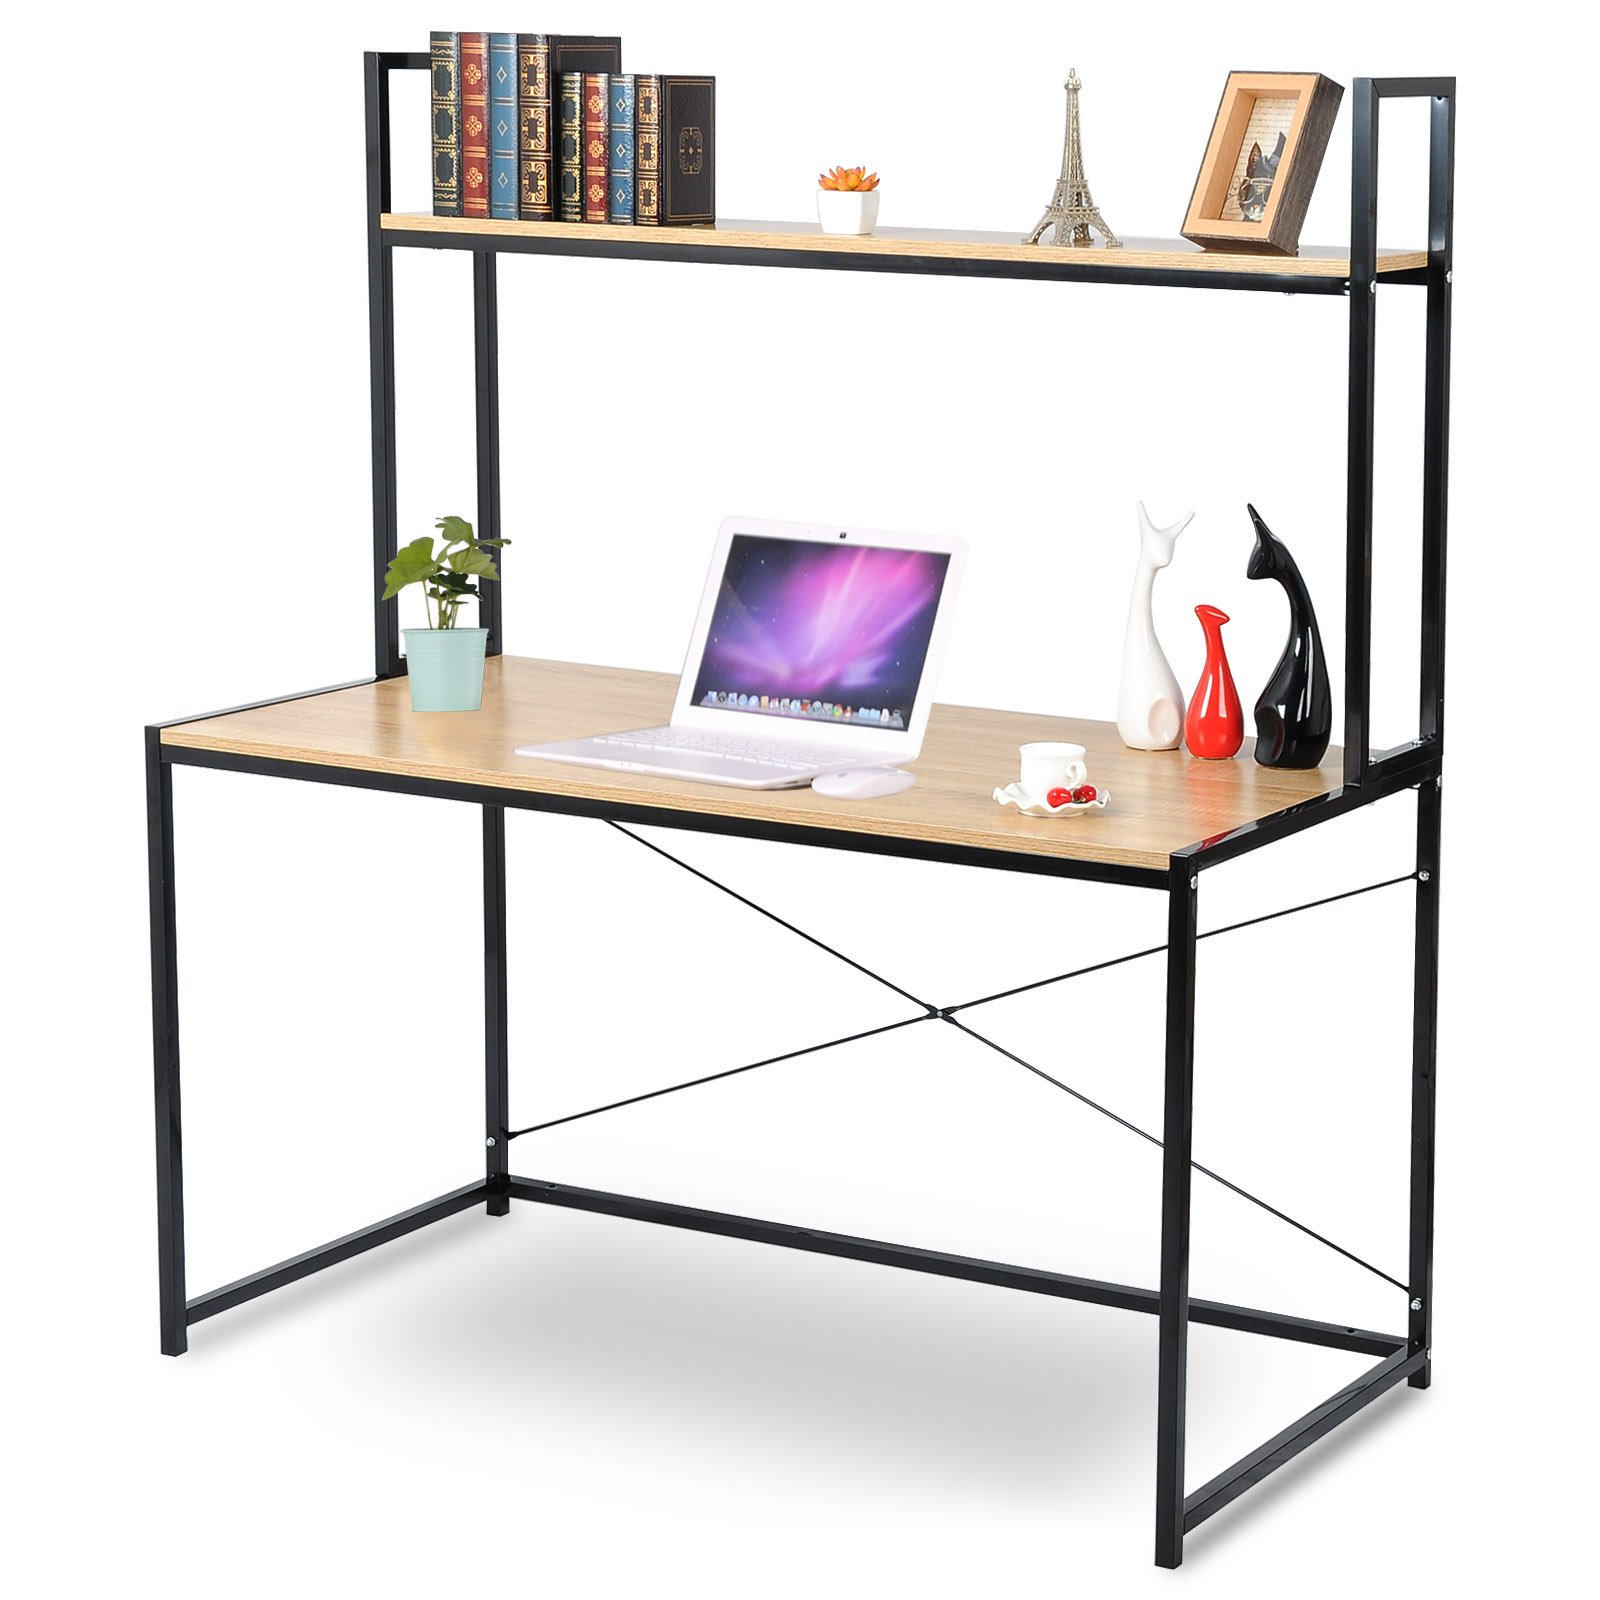 Space Saving Built In Office Furniture In Corners: WOLTU 2-Tier Shelves Modern Home Office Desk Space Saving